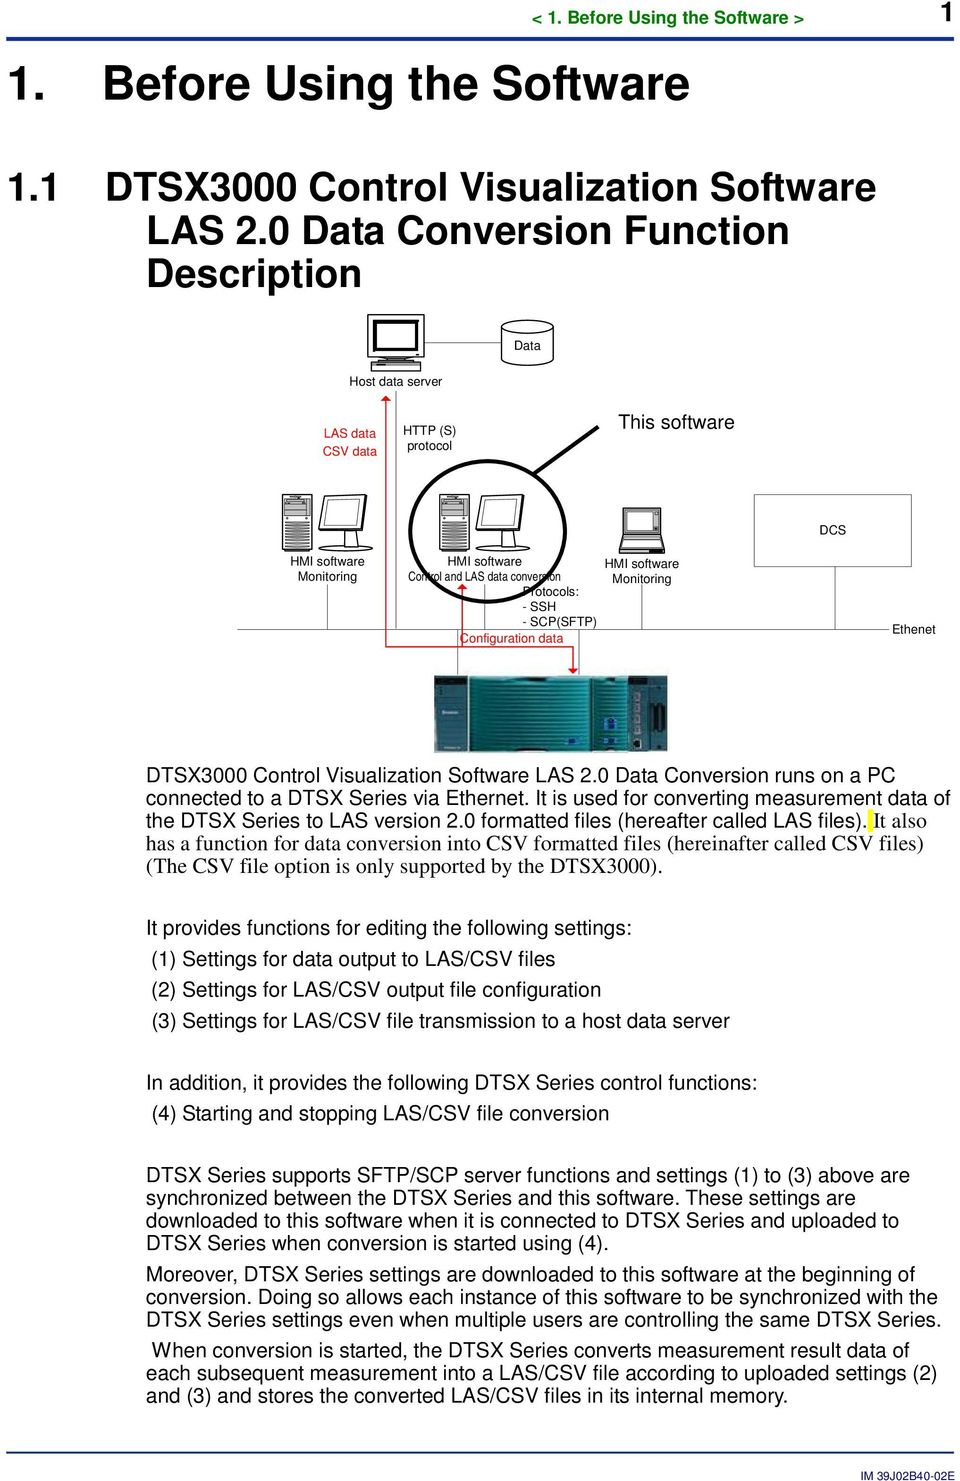 SSH - SCP(SFTP) Configuration data HMI software Monitoring Ethenet DTSX3000 Control Visualization Software LAS 2.0 Data Conversion runs on a PC connected to a DTSX Series via Ethernet.